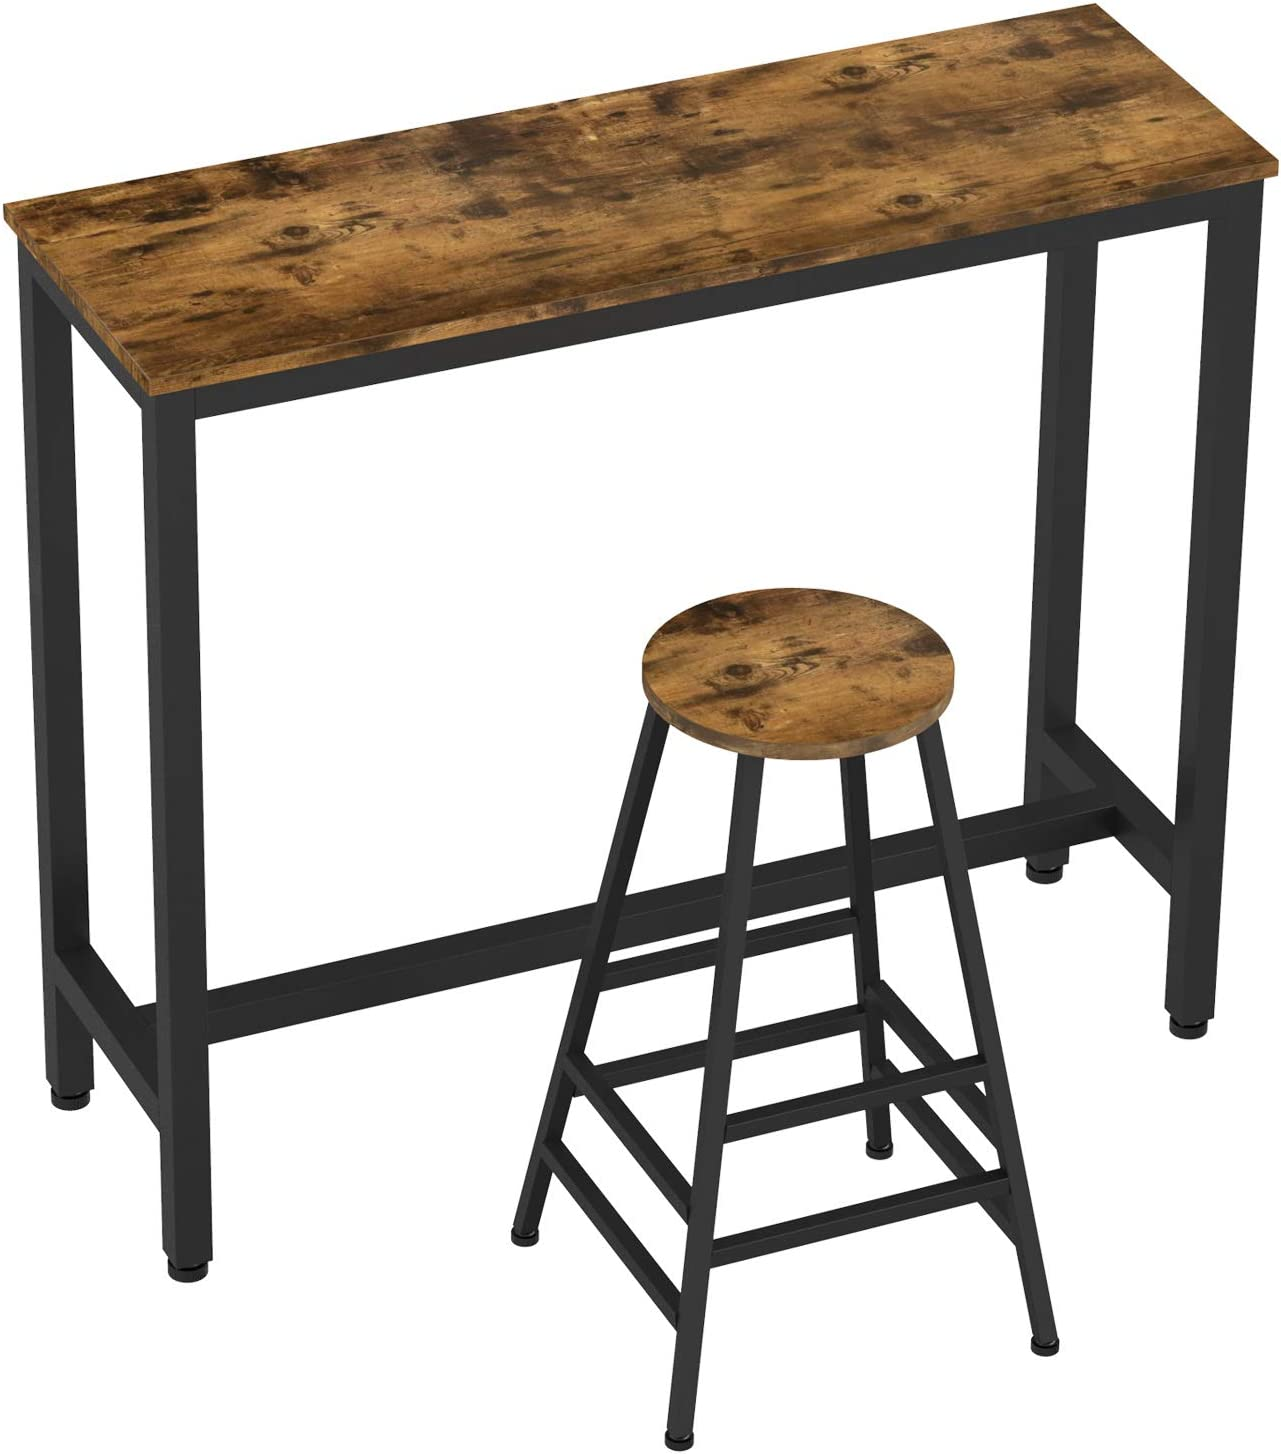 IRONCK 2-Piece Pub Bar Table Set, 47.2 L 15.7 W 39.4 H Industrial High Top Table with Bar Stool Chair, MDF Board and Metal, Vintage Brown